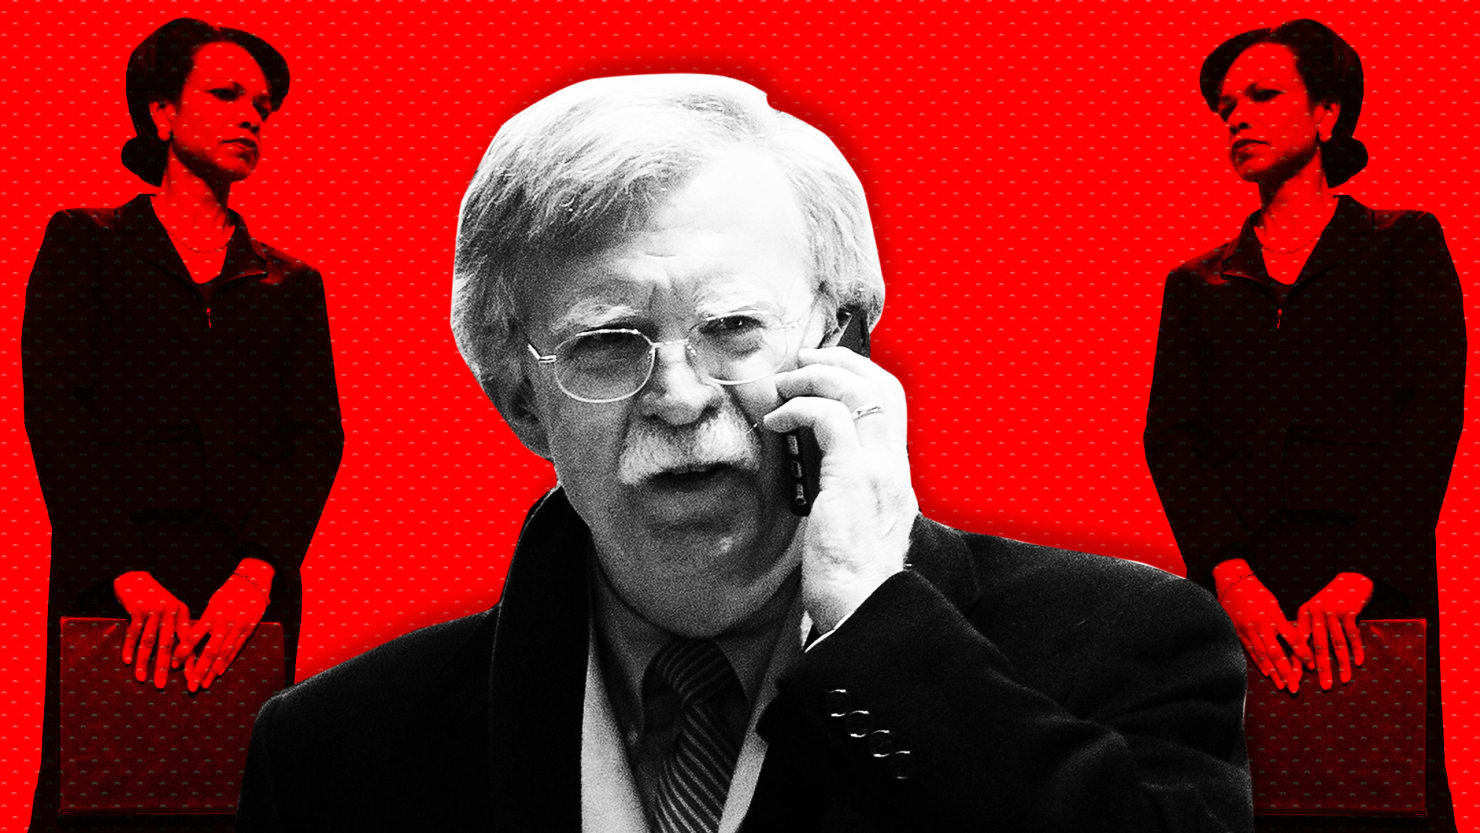 John Bolton Told Israel: 'Condi Rice Sold You Out,' Ex-Official Says